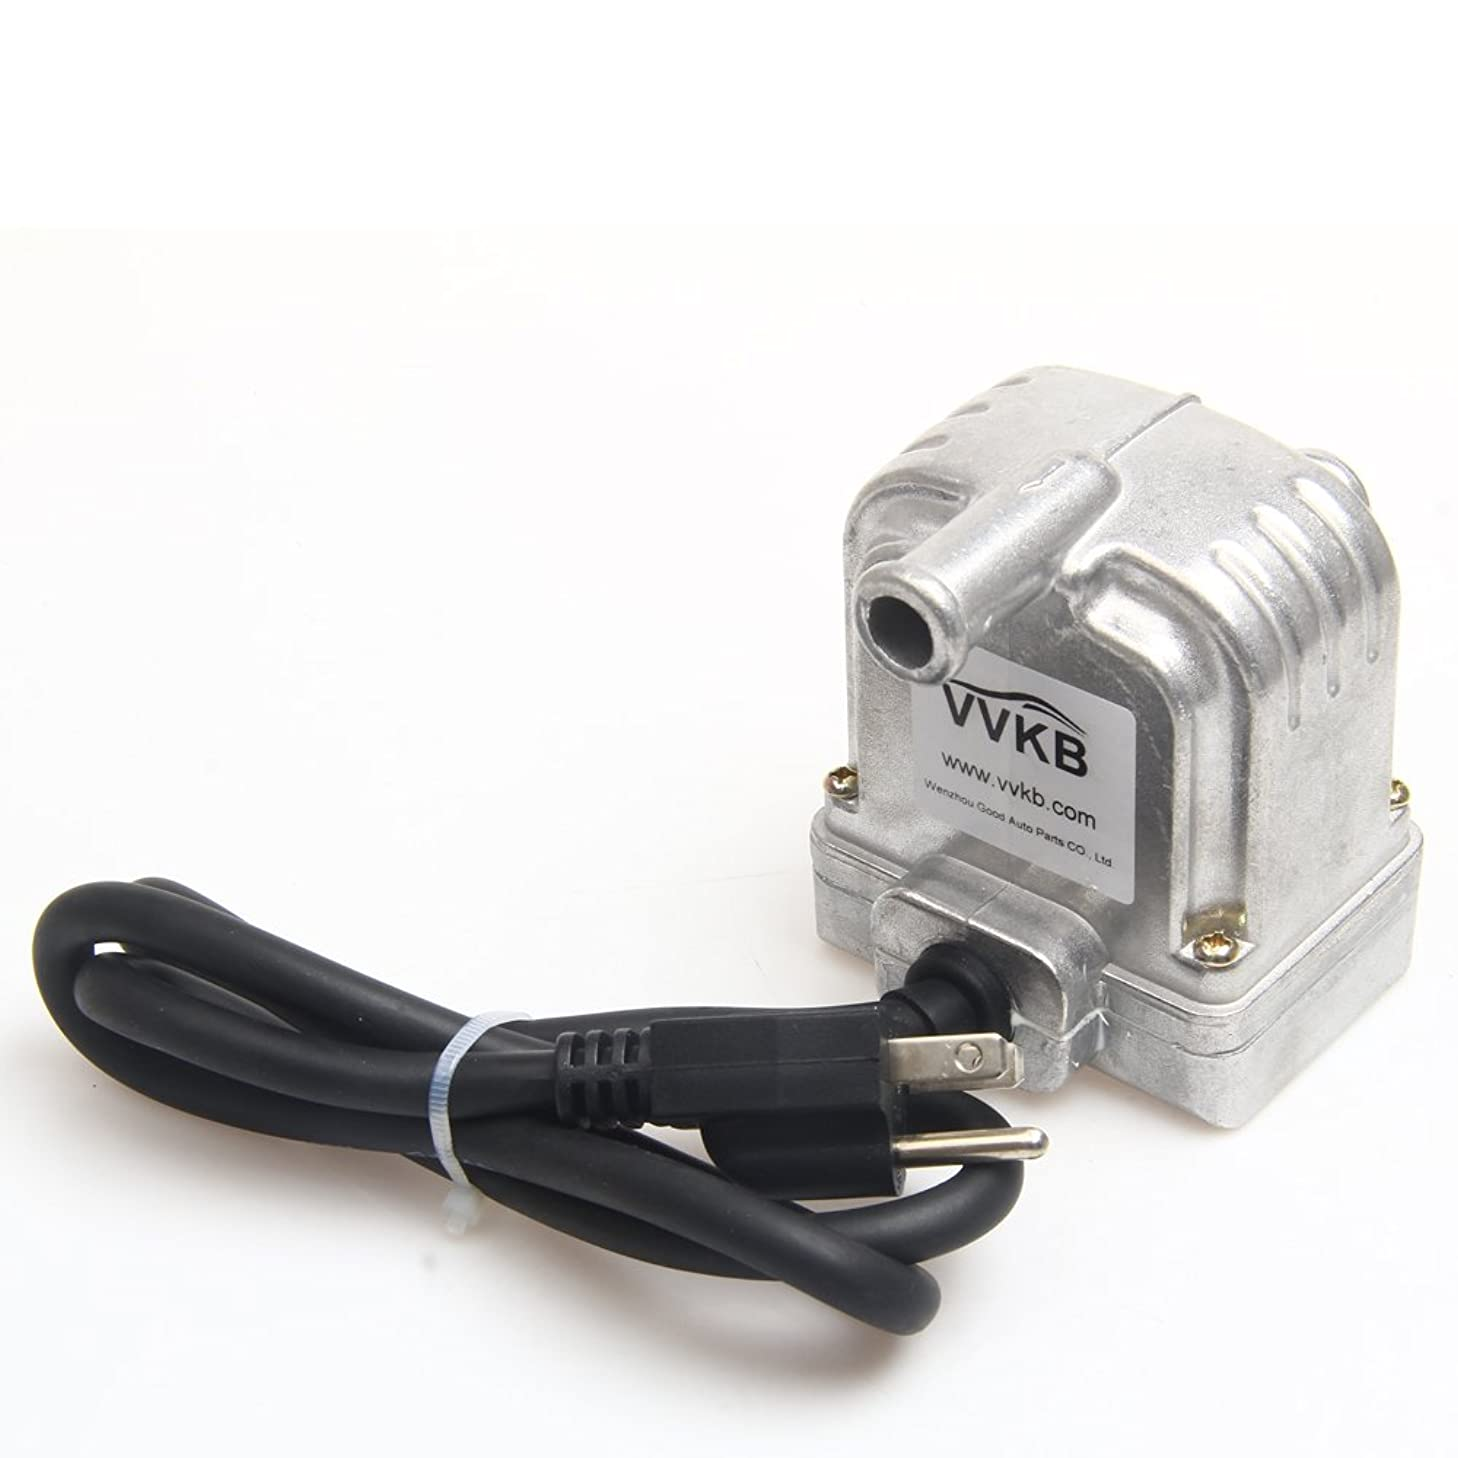 VVKB Engine Heater with Thermostat 110 Volt 1000 Watt